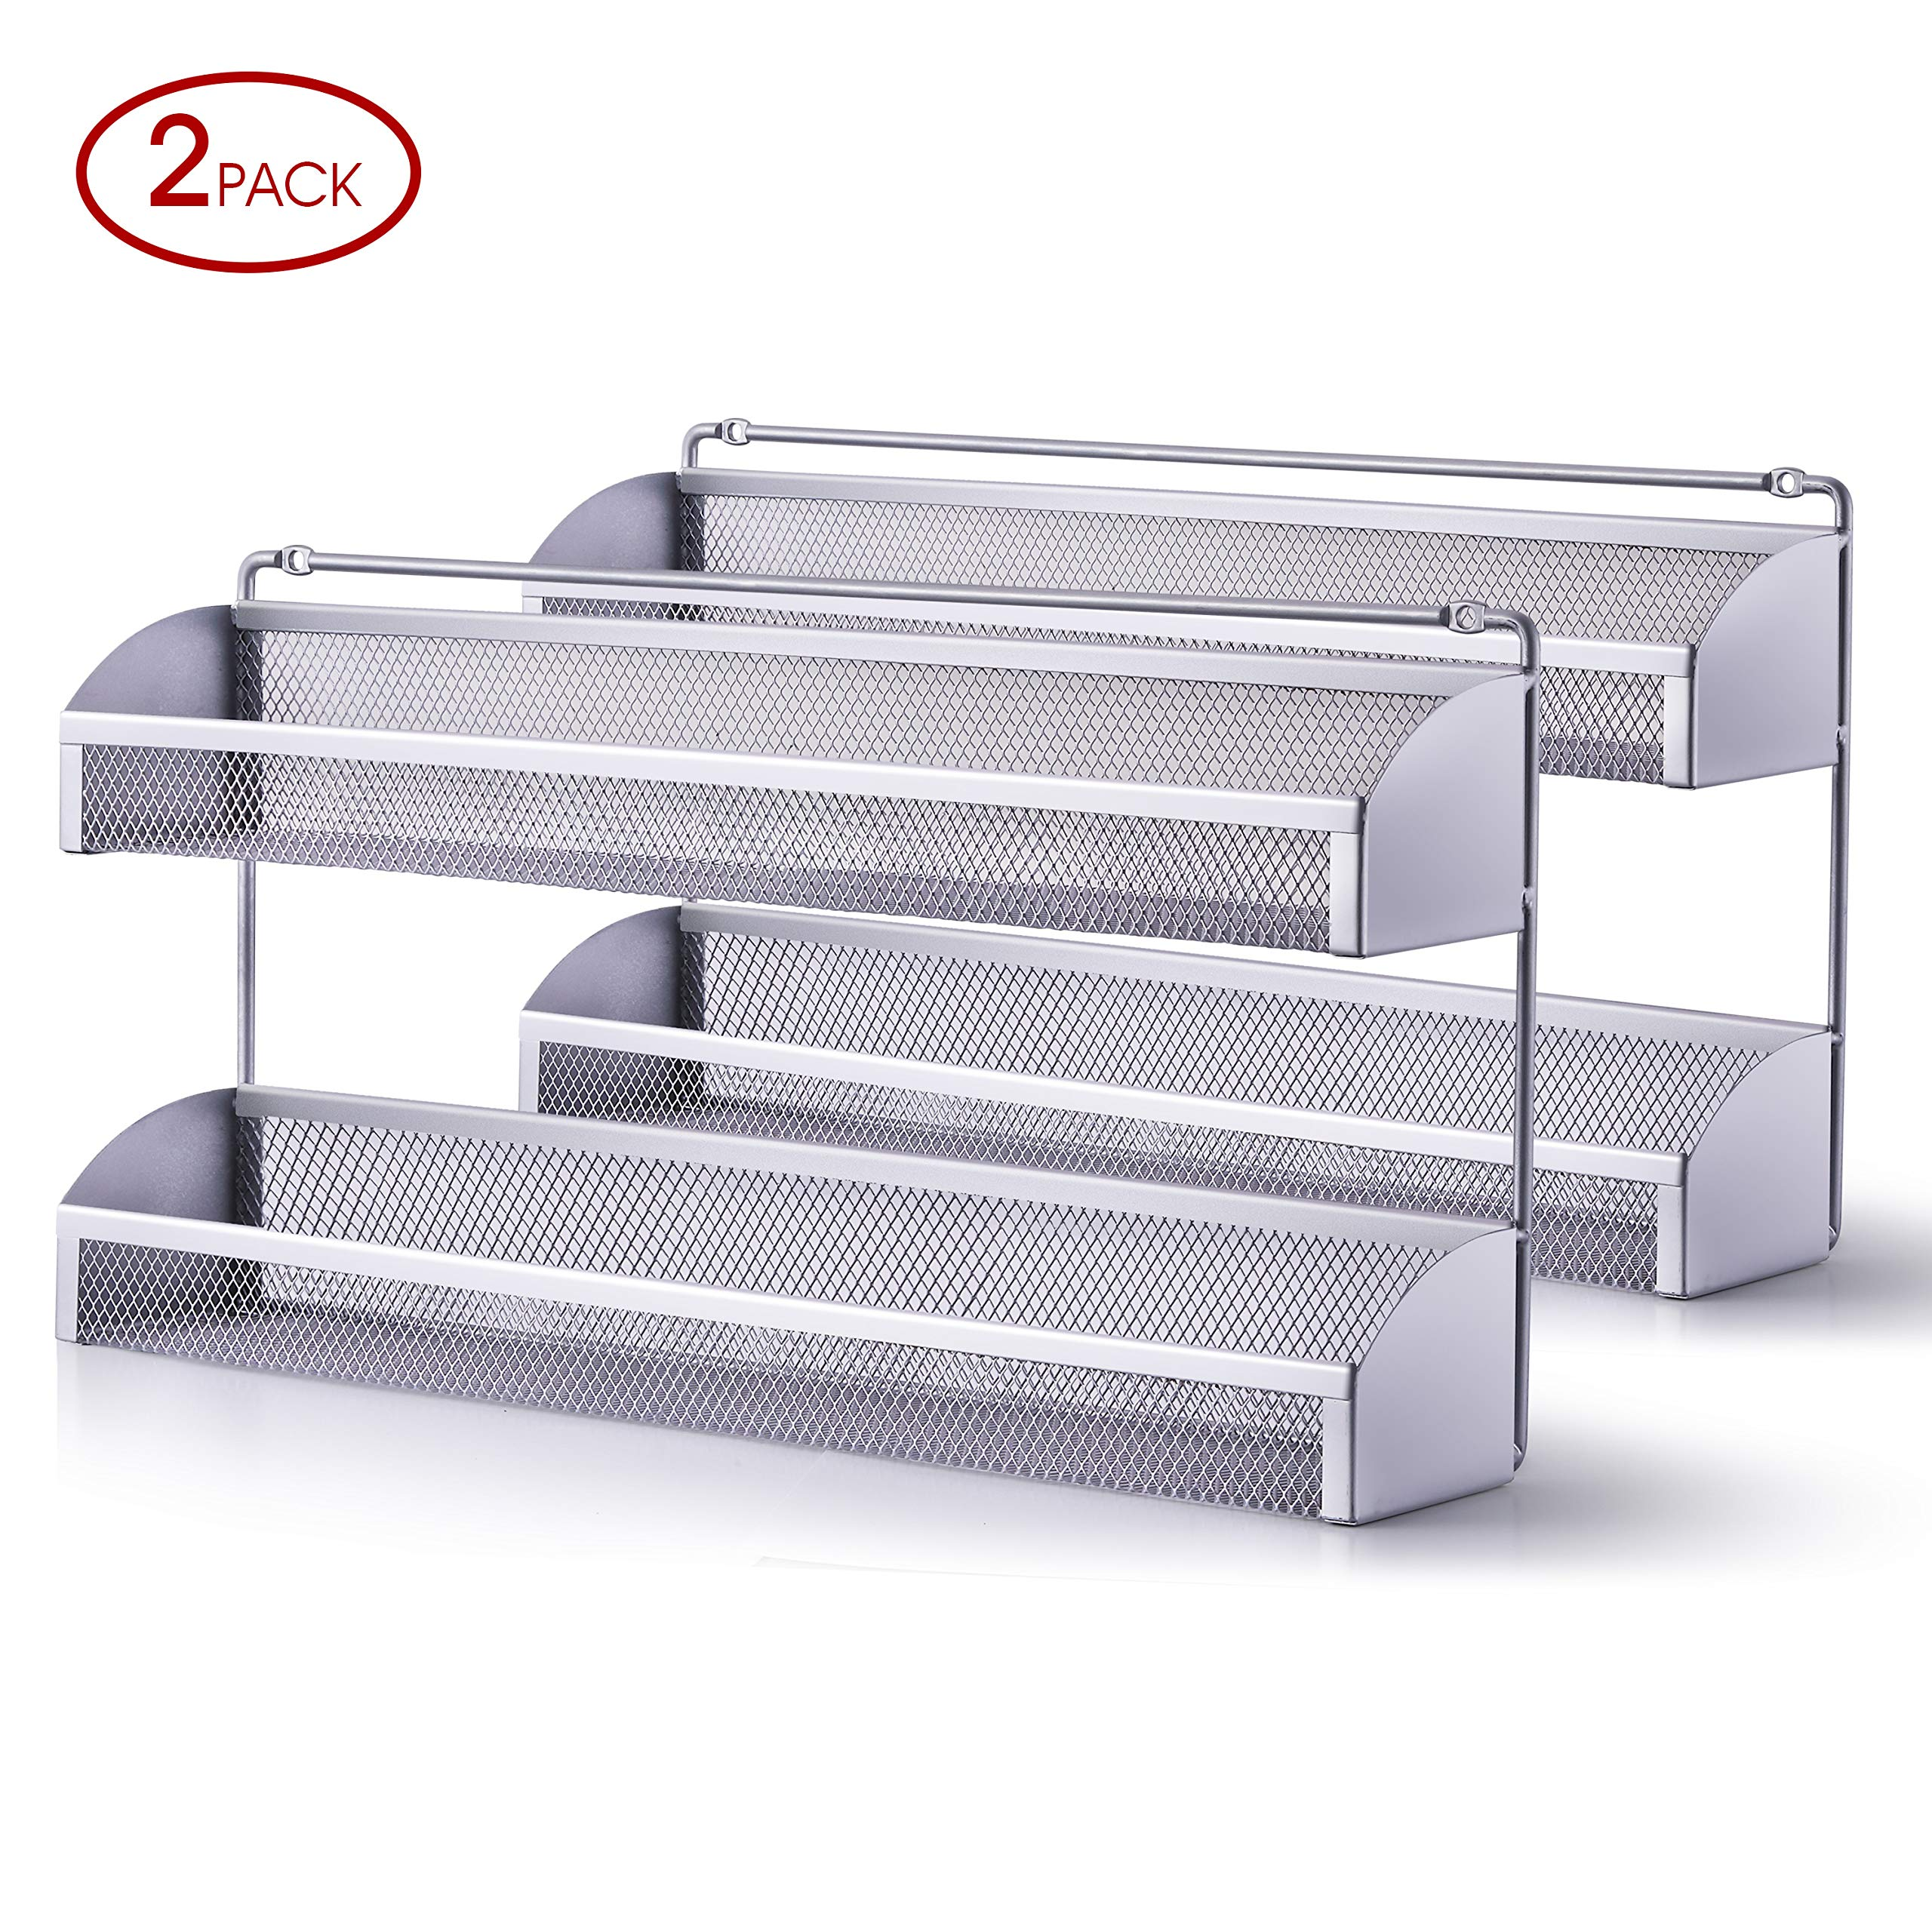 2 Pack- Simple Trending 2 Tier Spice Rack Organizer, Wall Mounted Spice Shelf Storager Holder for Kitchen Cabinet Pantry Door, Silver by Simple Trending